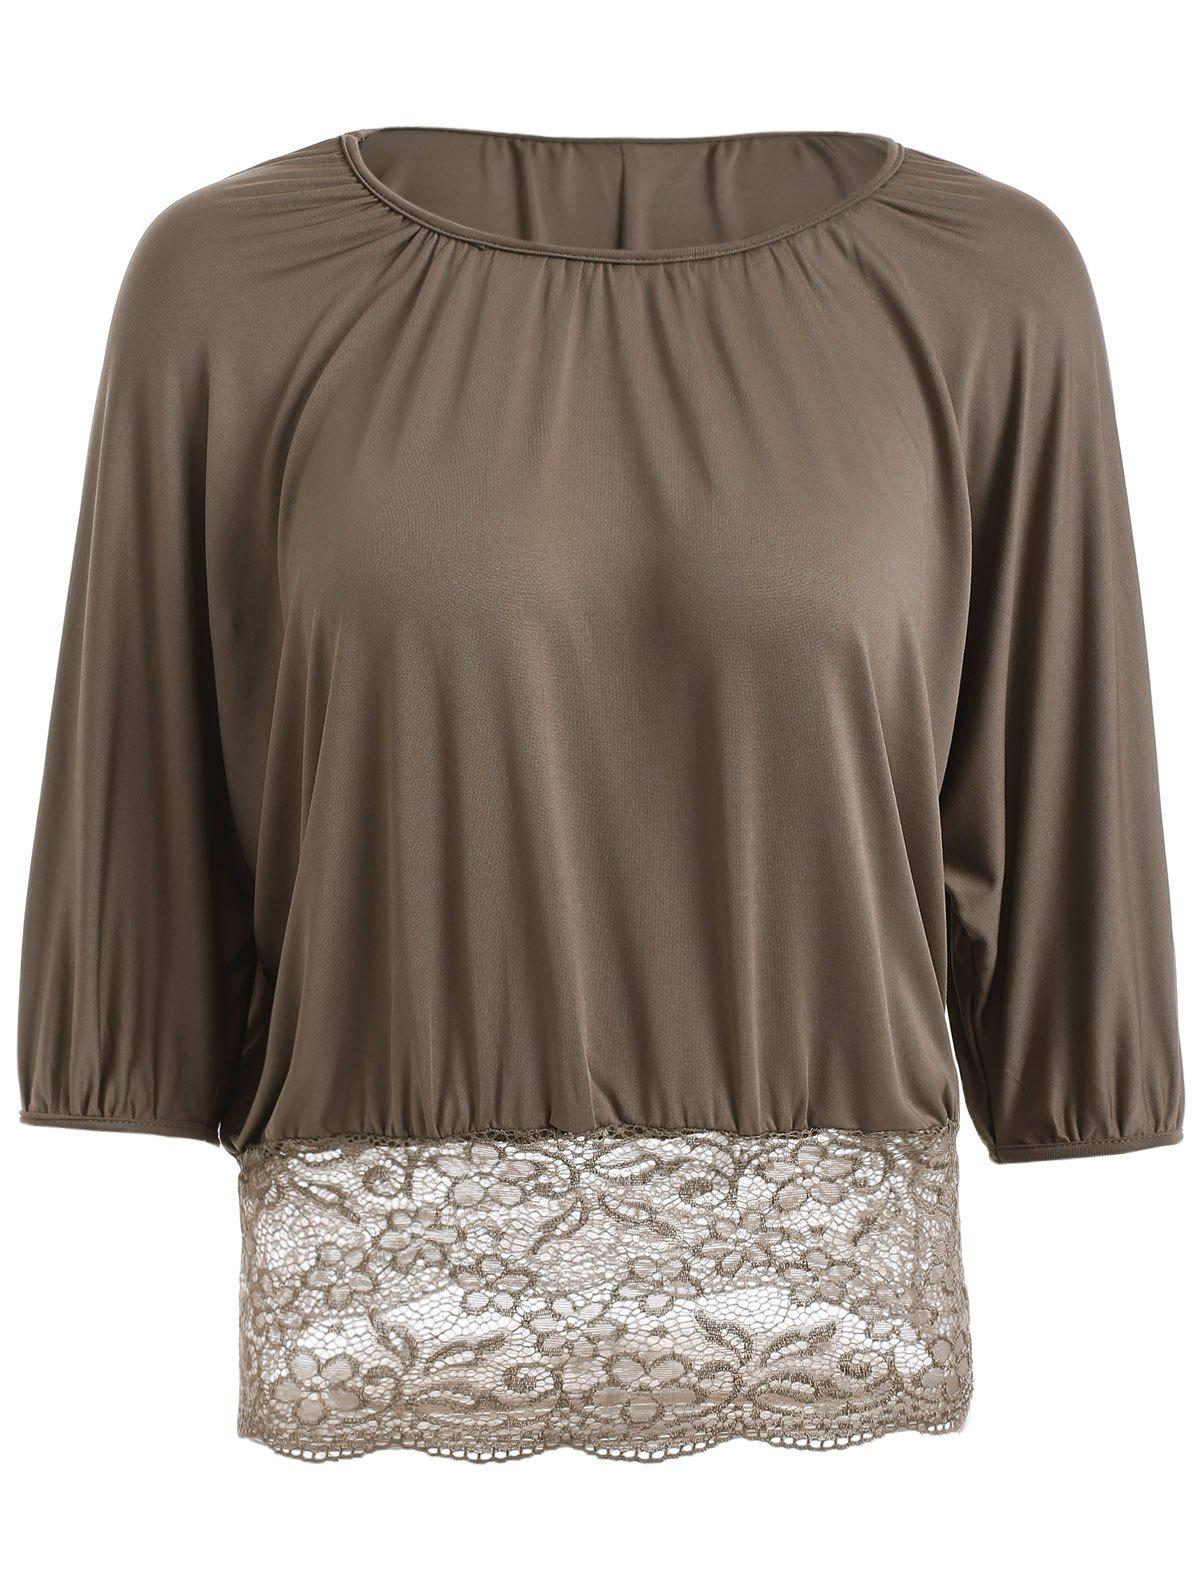 Batwing Sleeves Lace Spliced Waisted Blouse - KHAKI 2XL